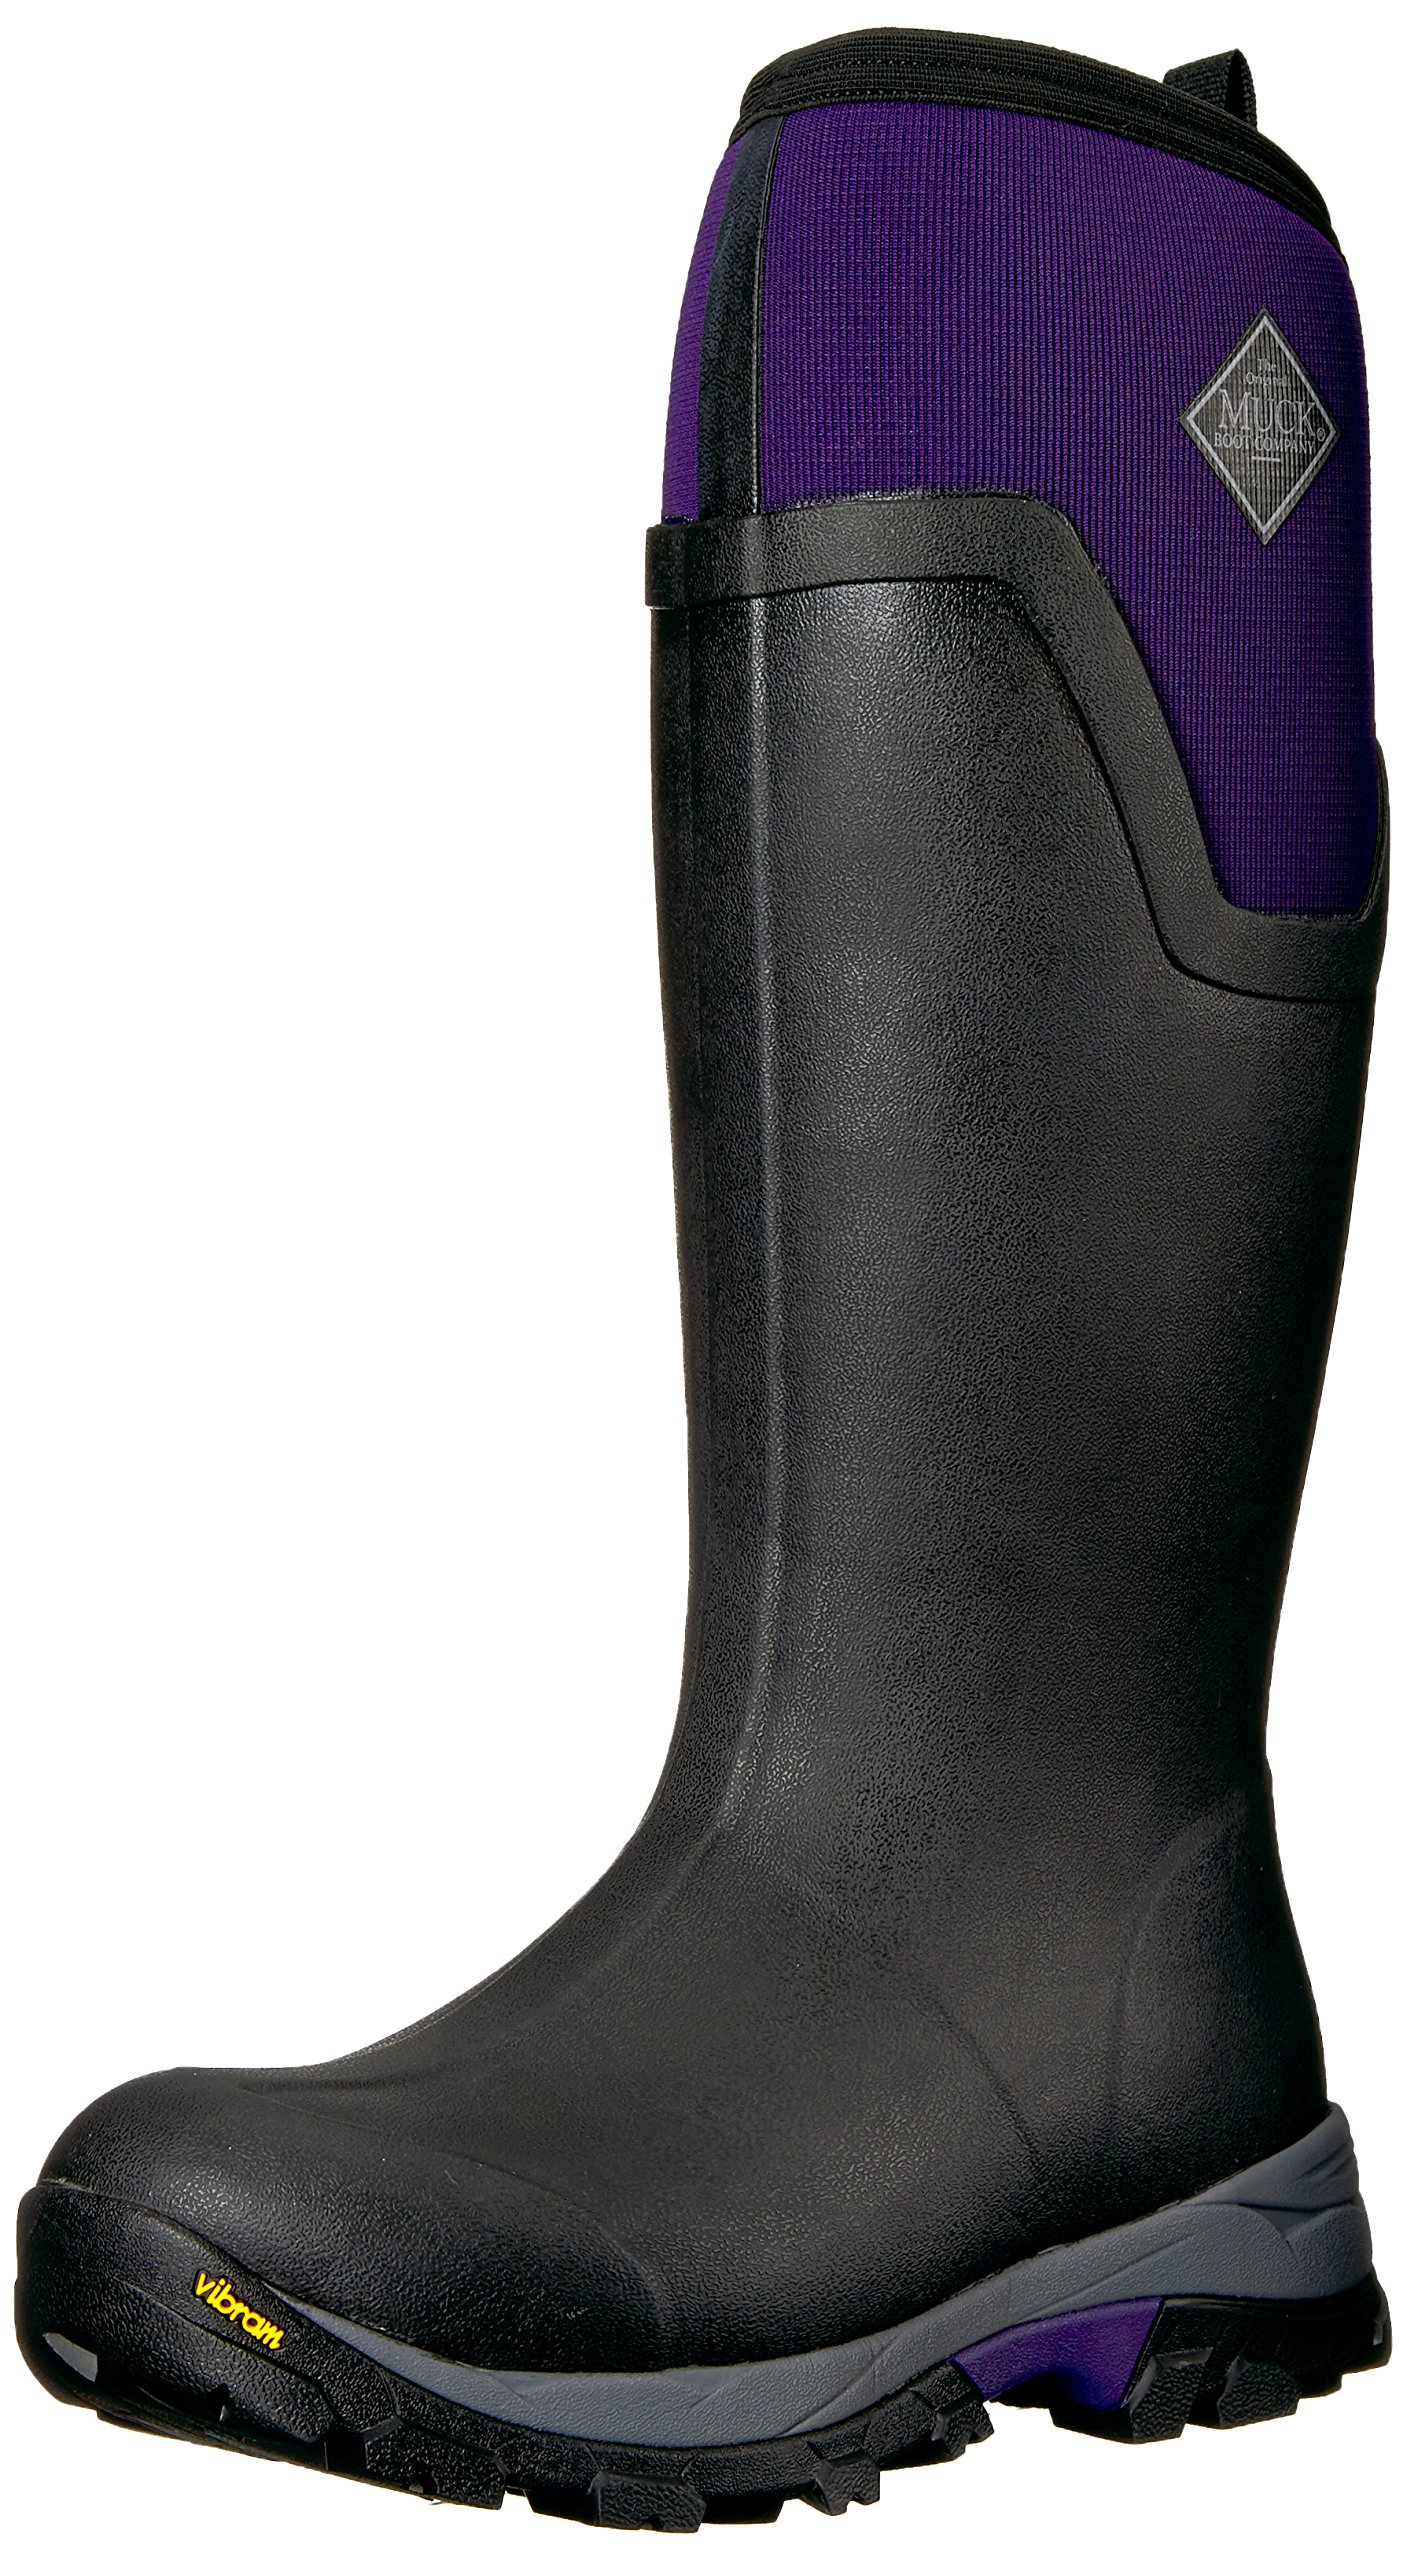 Muck Boot Women's Arctic Ice Tall Work Boot, Black/Purple, 8 M US by Muck Boot